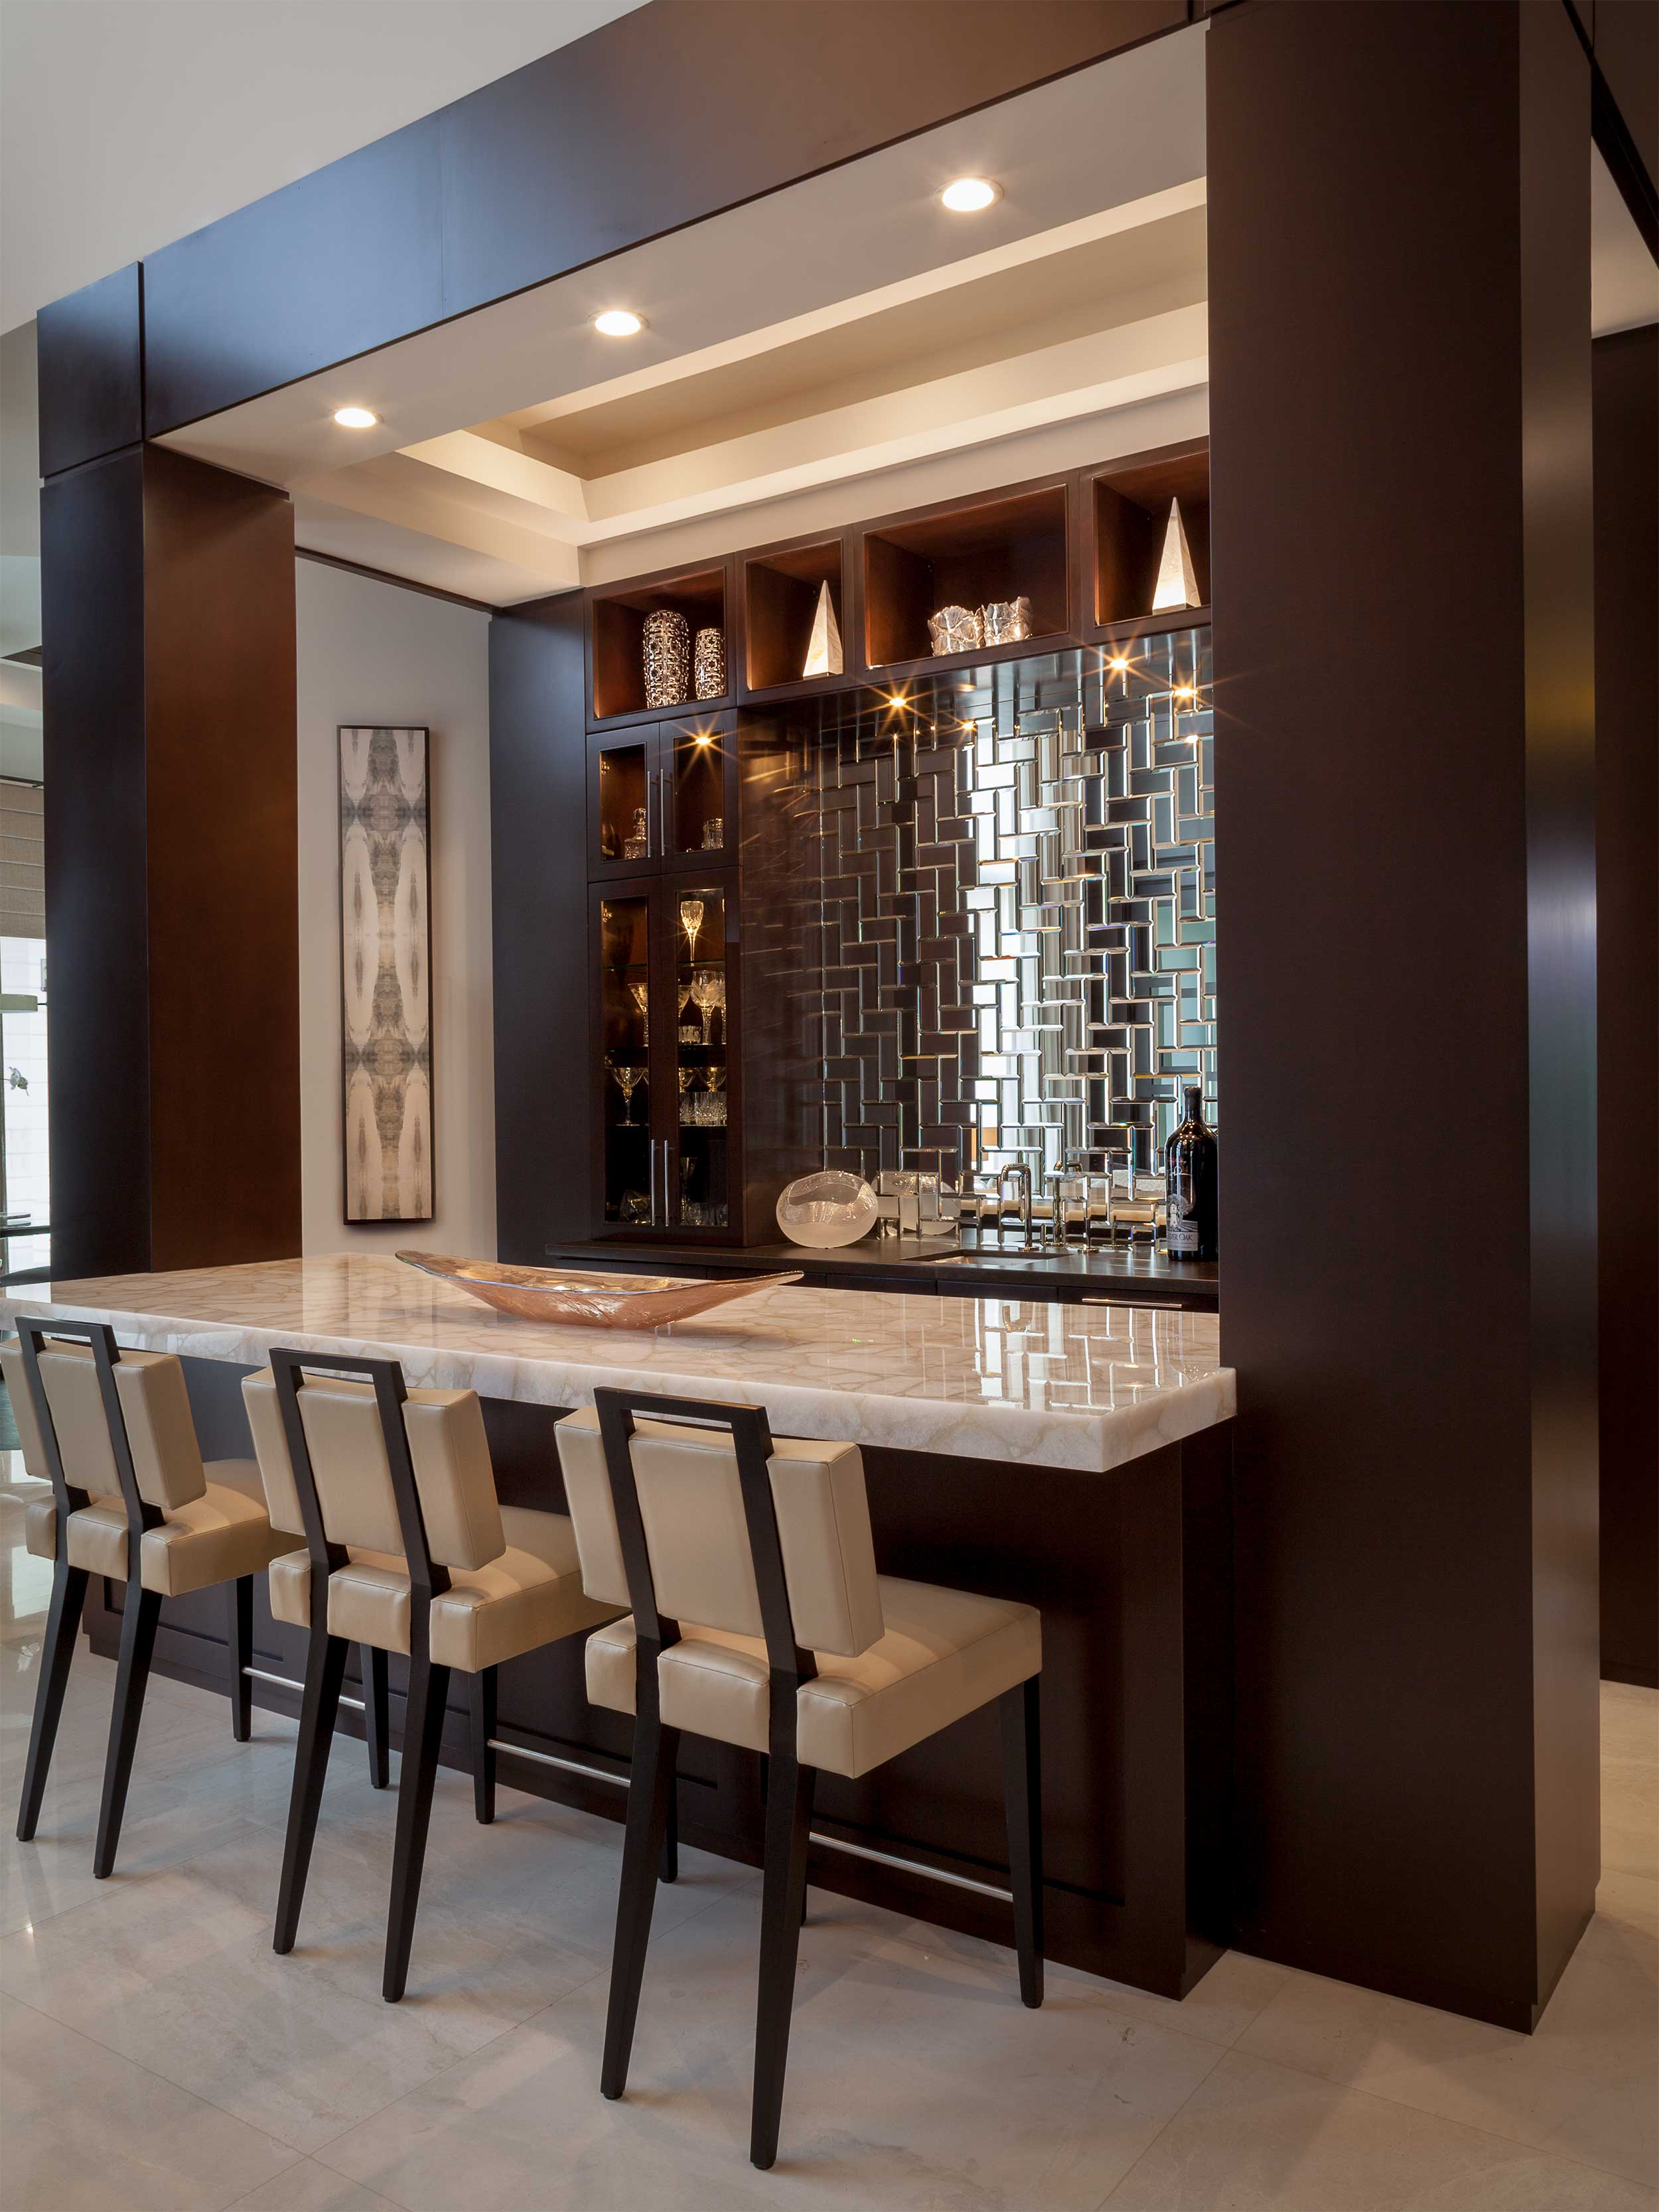 Elegant bar in Residential Interior Design Project in Jupiter, FL